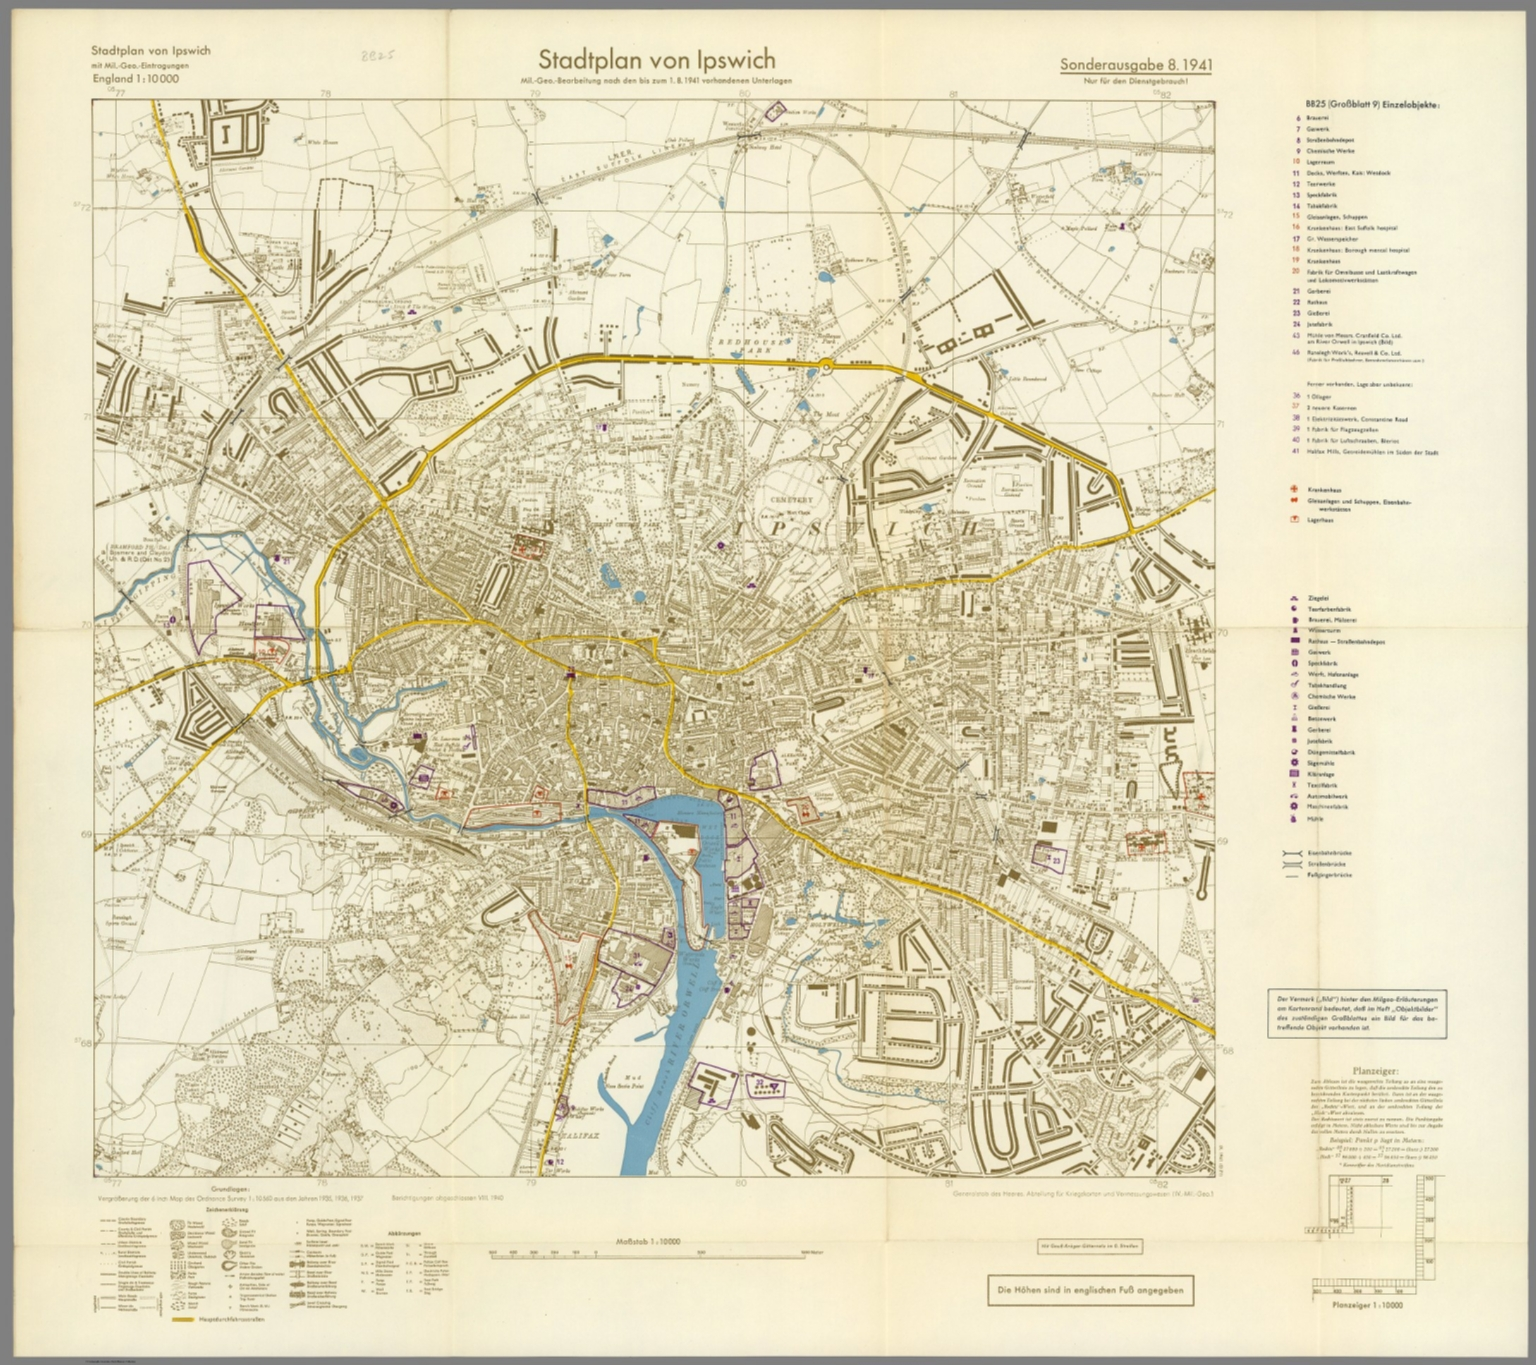 Street Map of Ipswich England with MilitaryGeographic Features BB